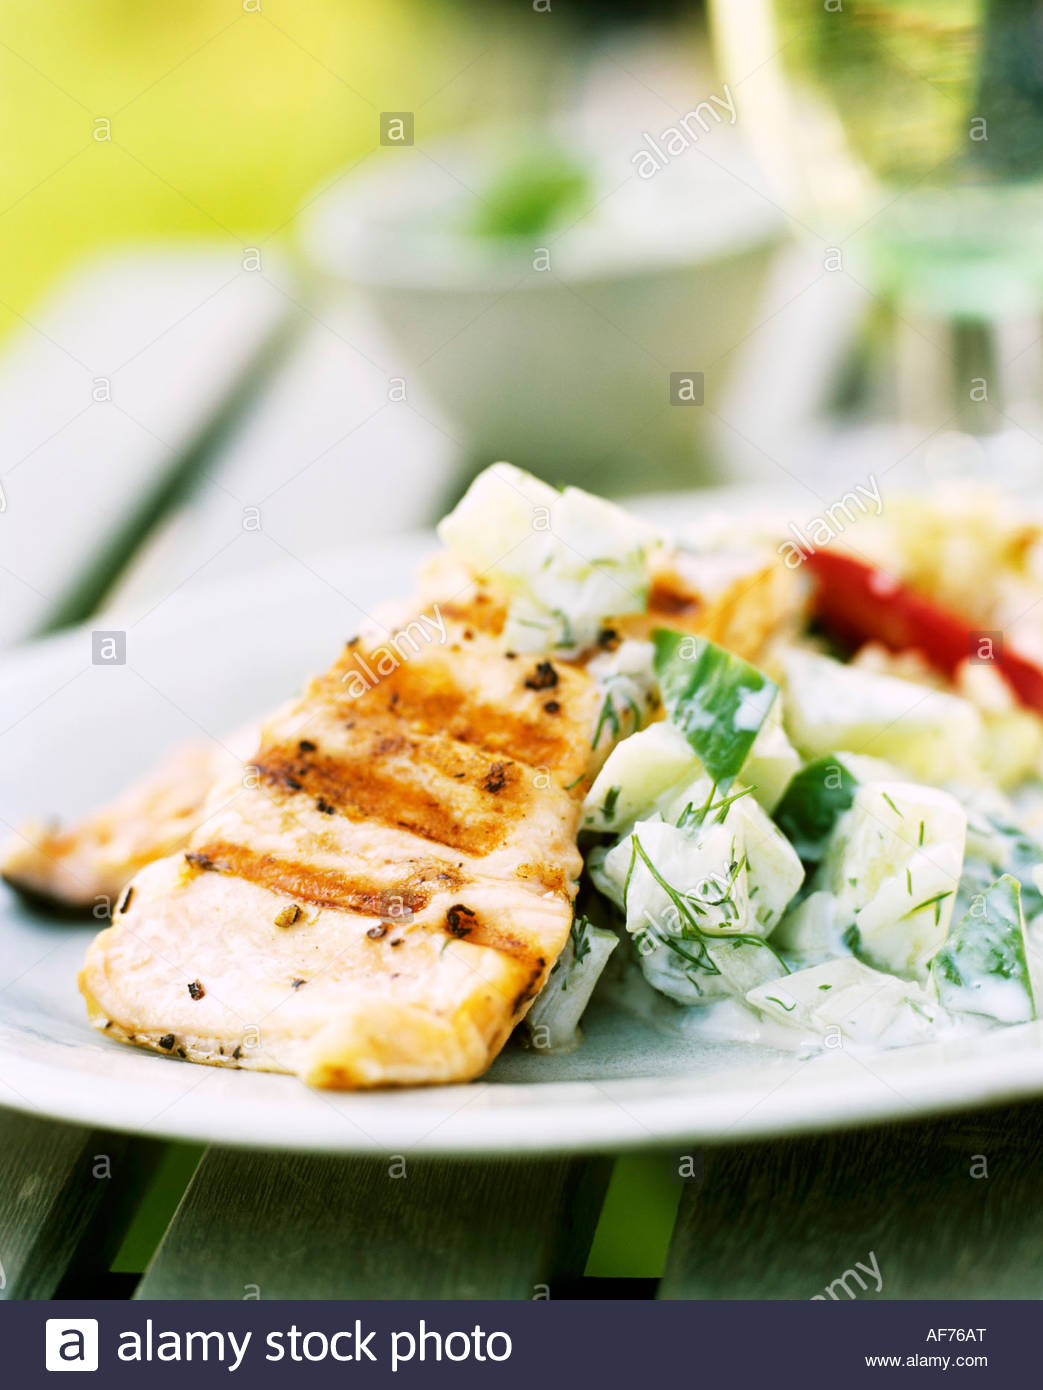 Grilled Tuna With Cucumber Salad Recipes — Dishmaps